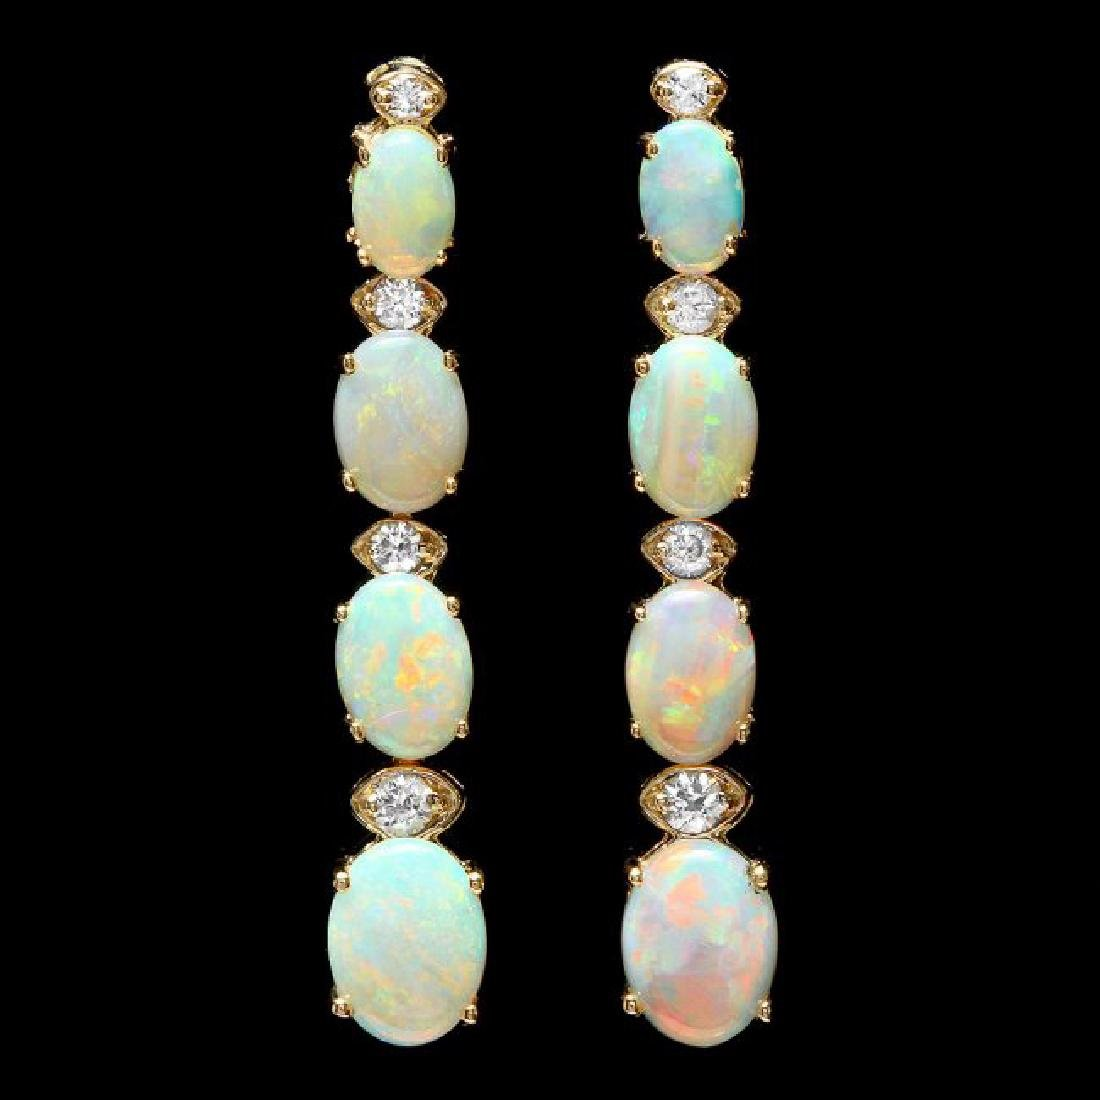 14k Gold 3.50ct Opal 0.35ct Diamond Earrings